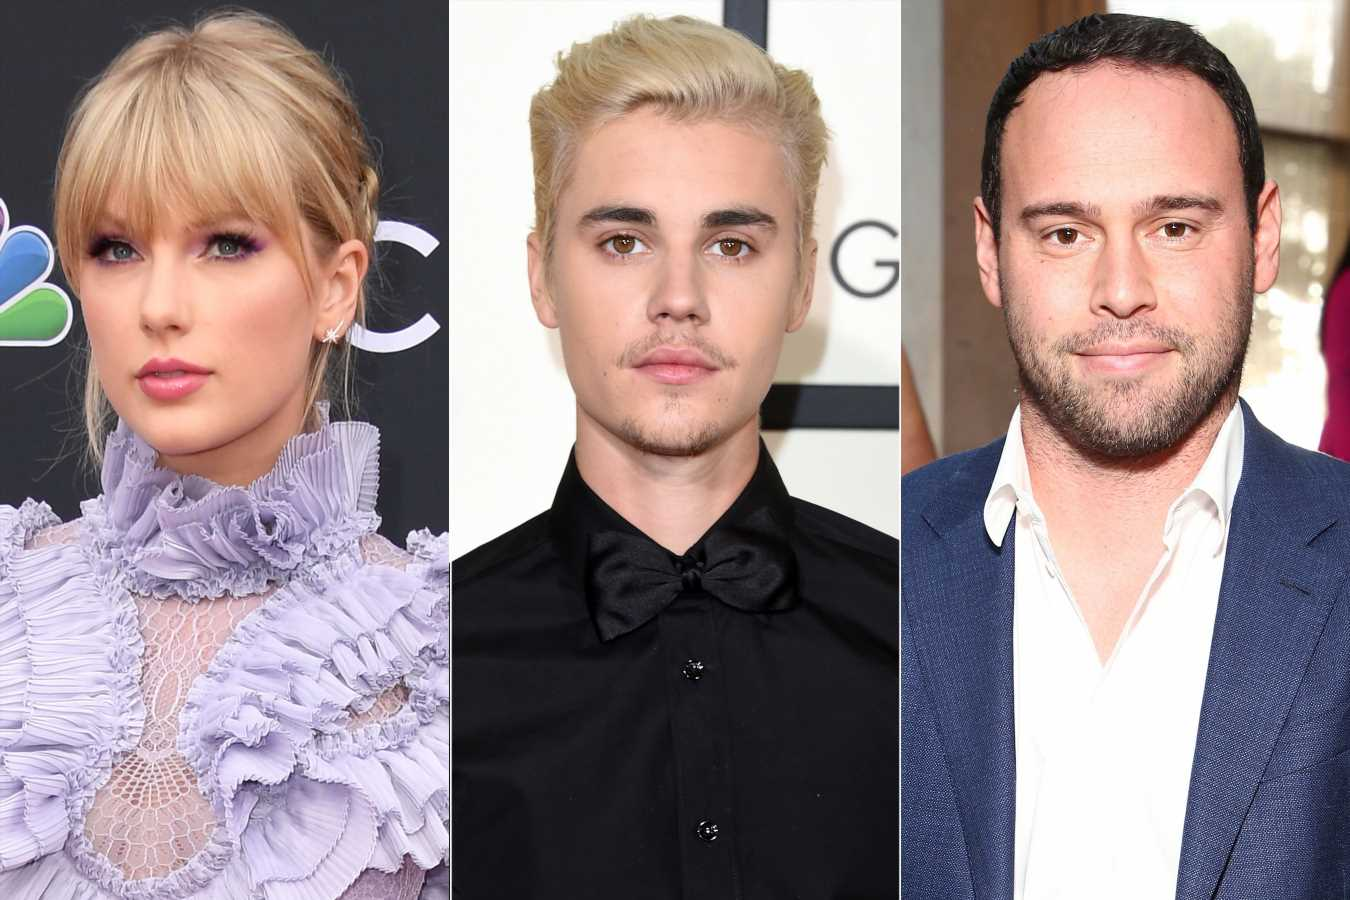 Justin Bieber 'Felt the Need to Defend' Scooter Braun in Taylor Swift Feud: Source